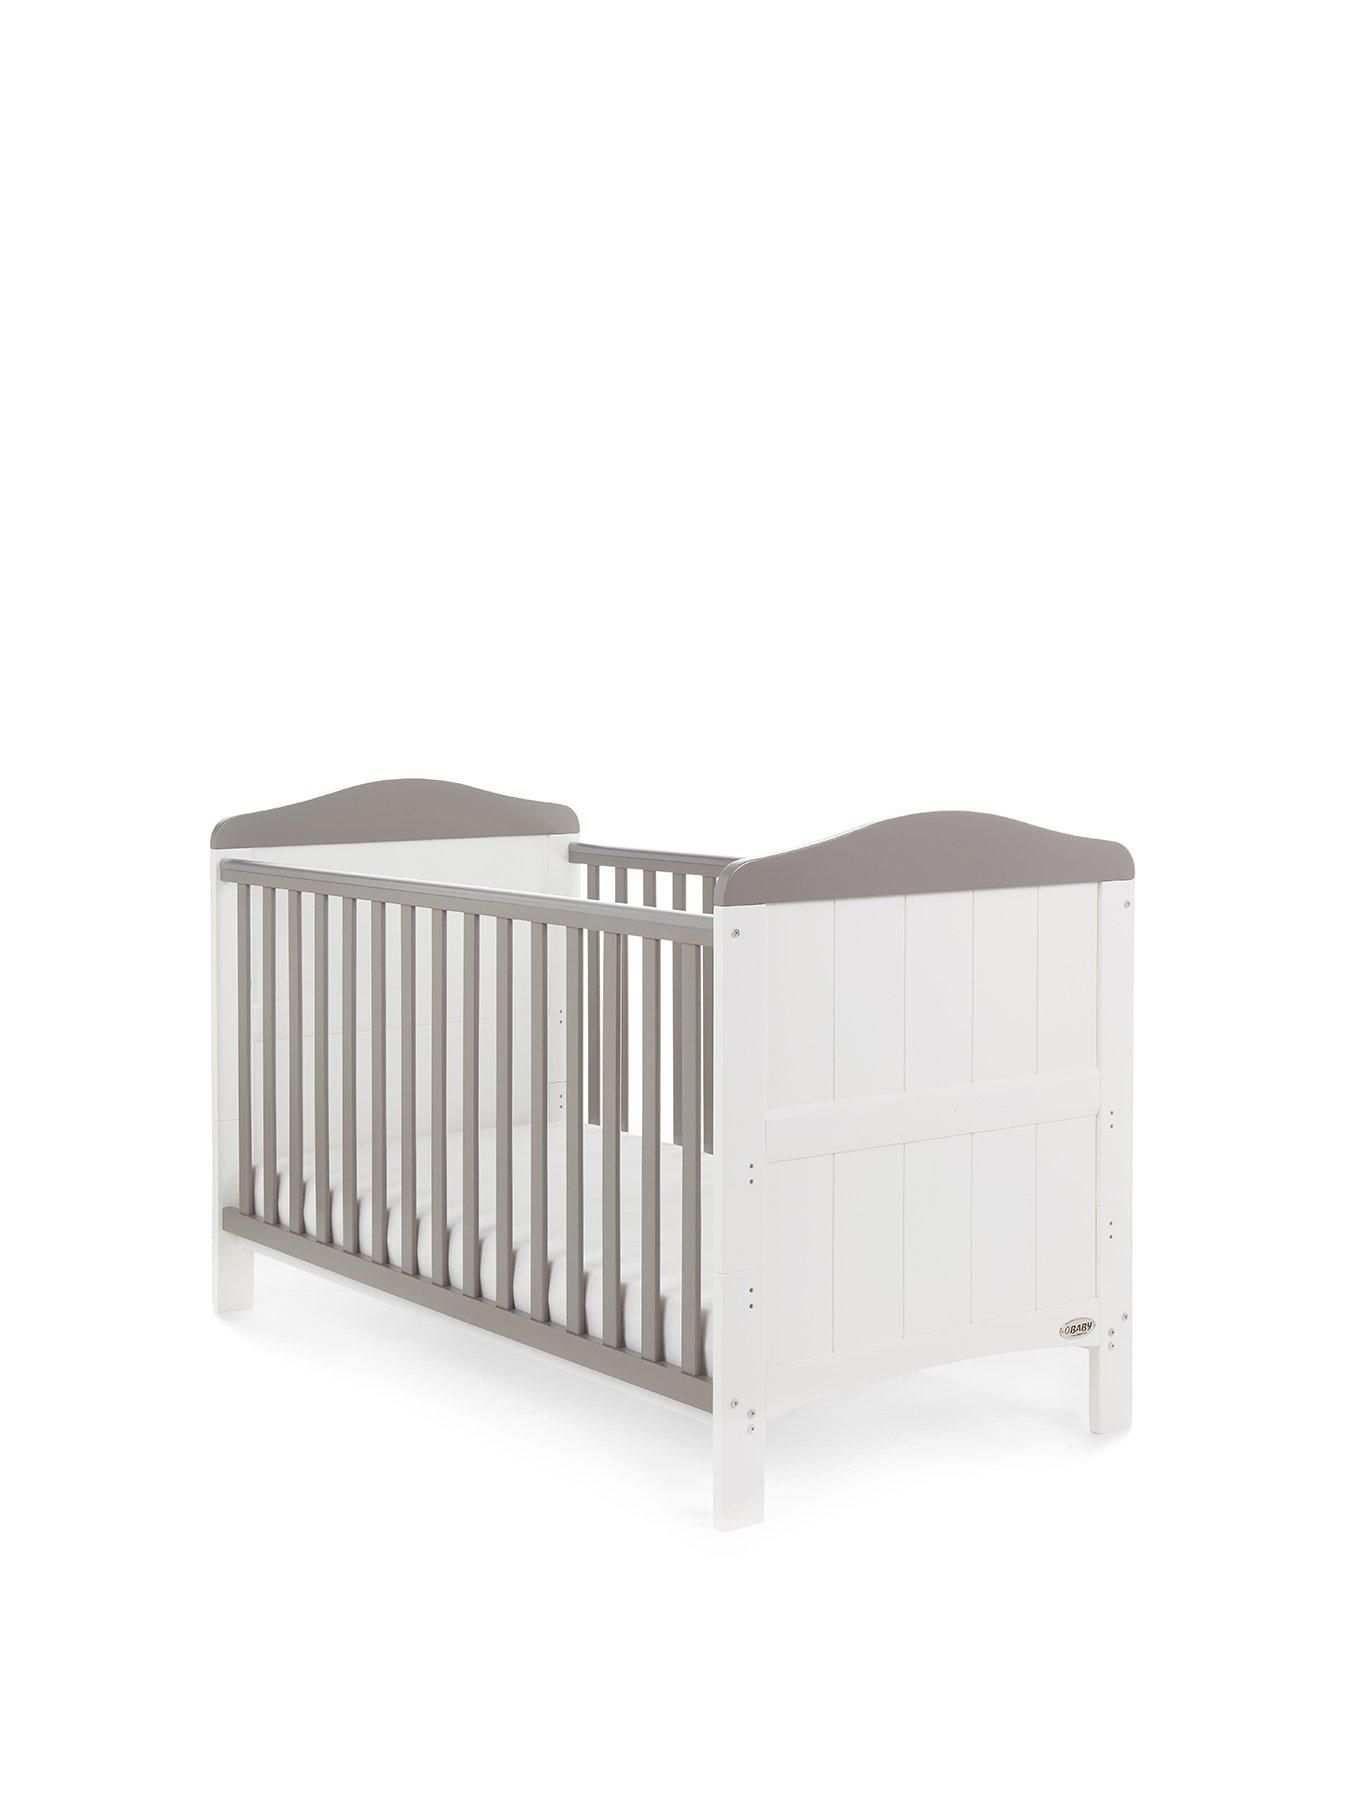 Whitby Cot Bed Cot Bedding Bed Bed Styling